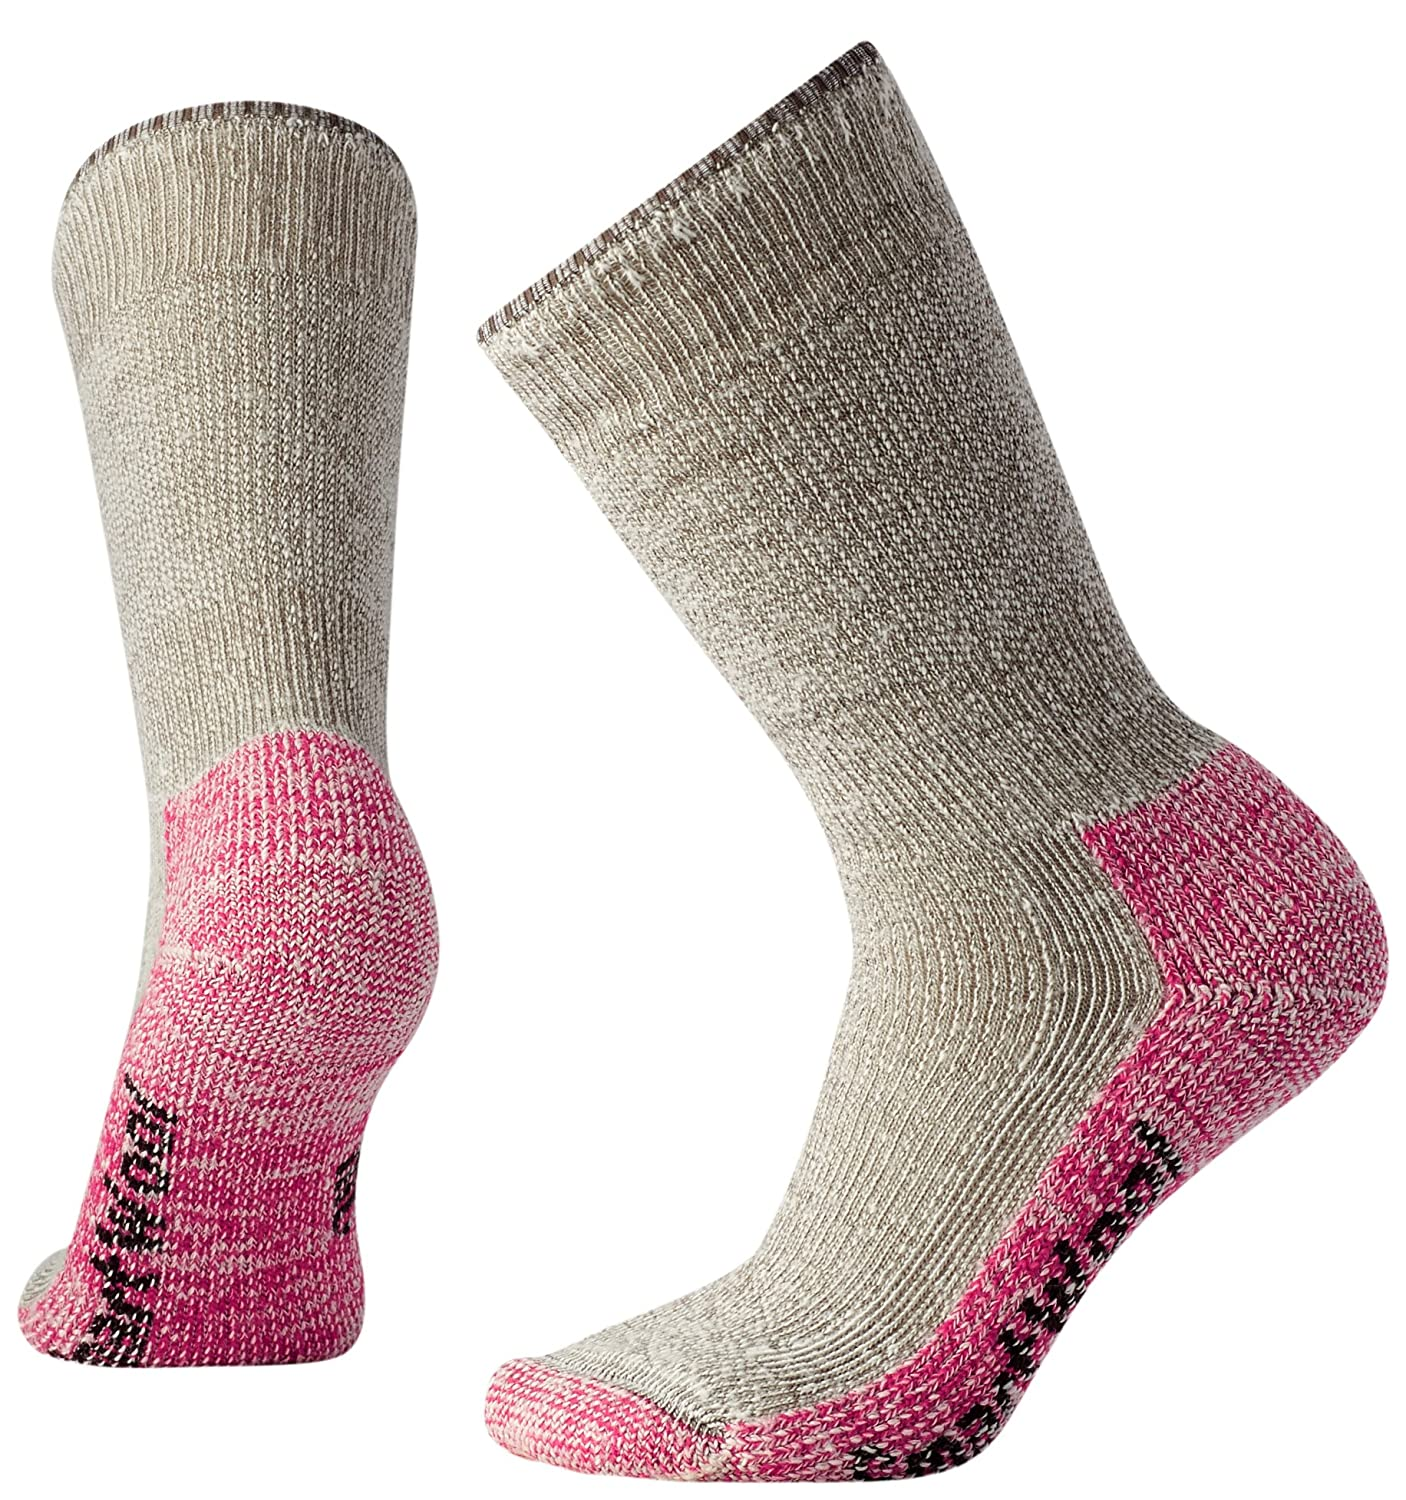 M Donna B01054643 Smartwool Donna Mountaineering Extra Heavy Crew Calzini